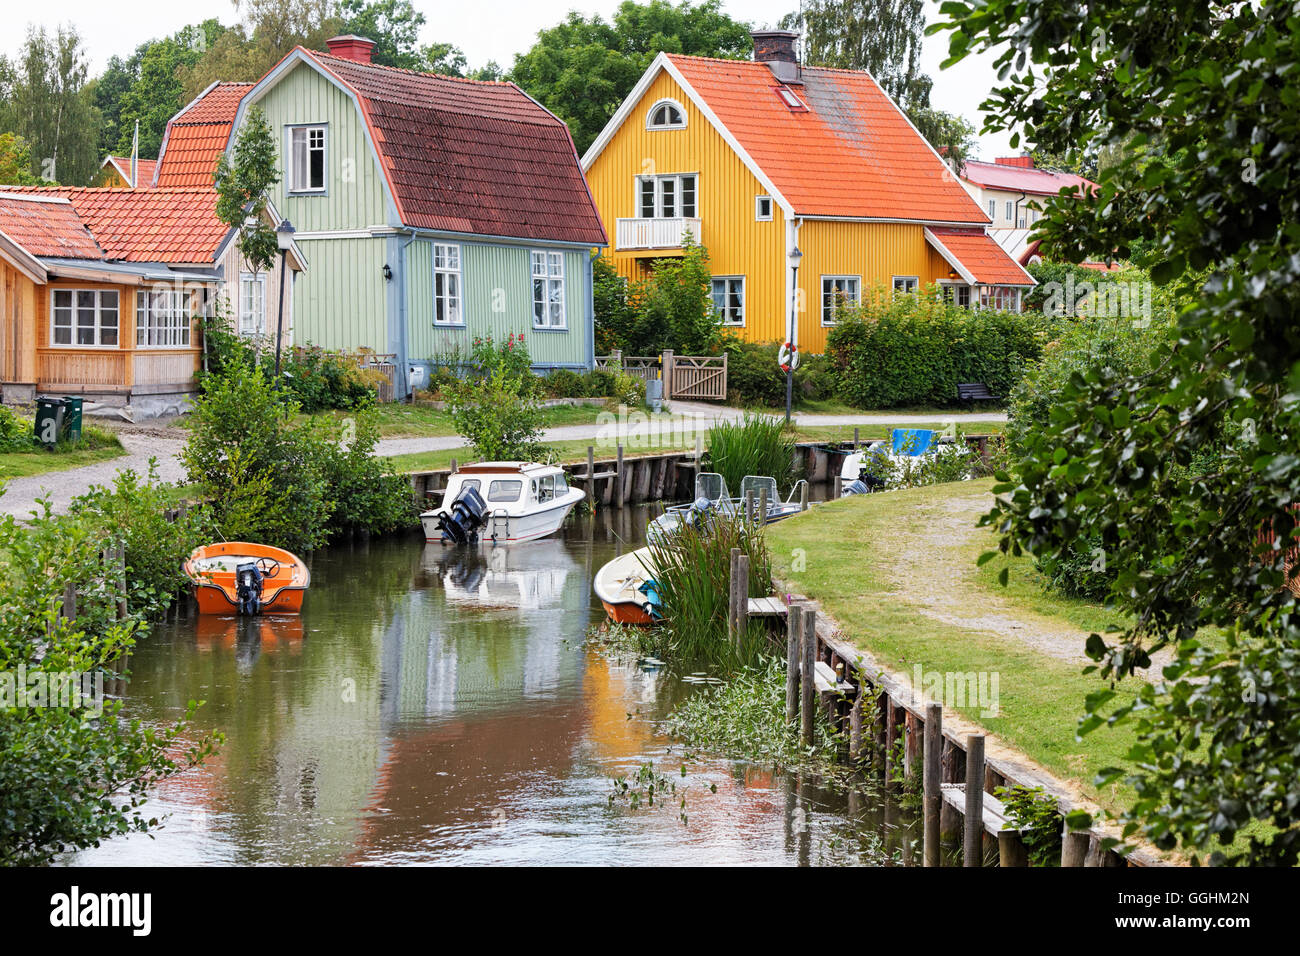 Canal with typical wooden houses, Trosa, Sweden - Stock Image